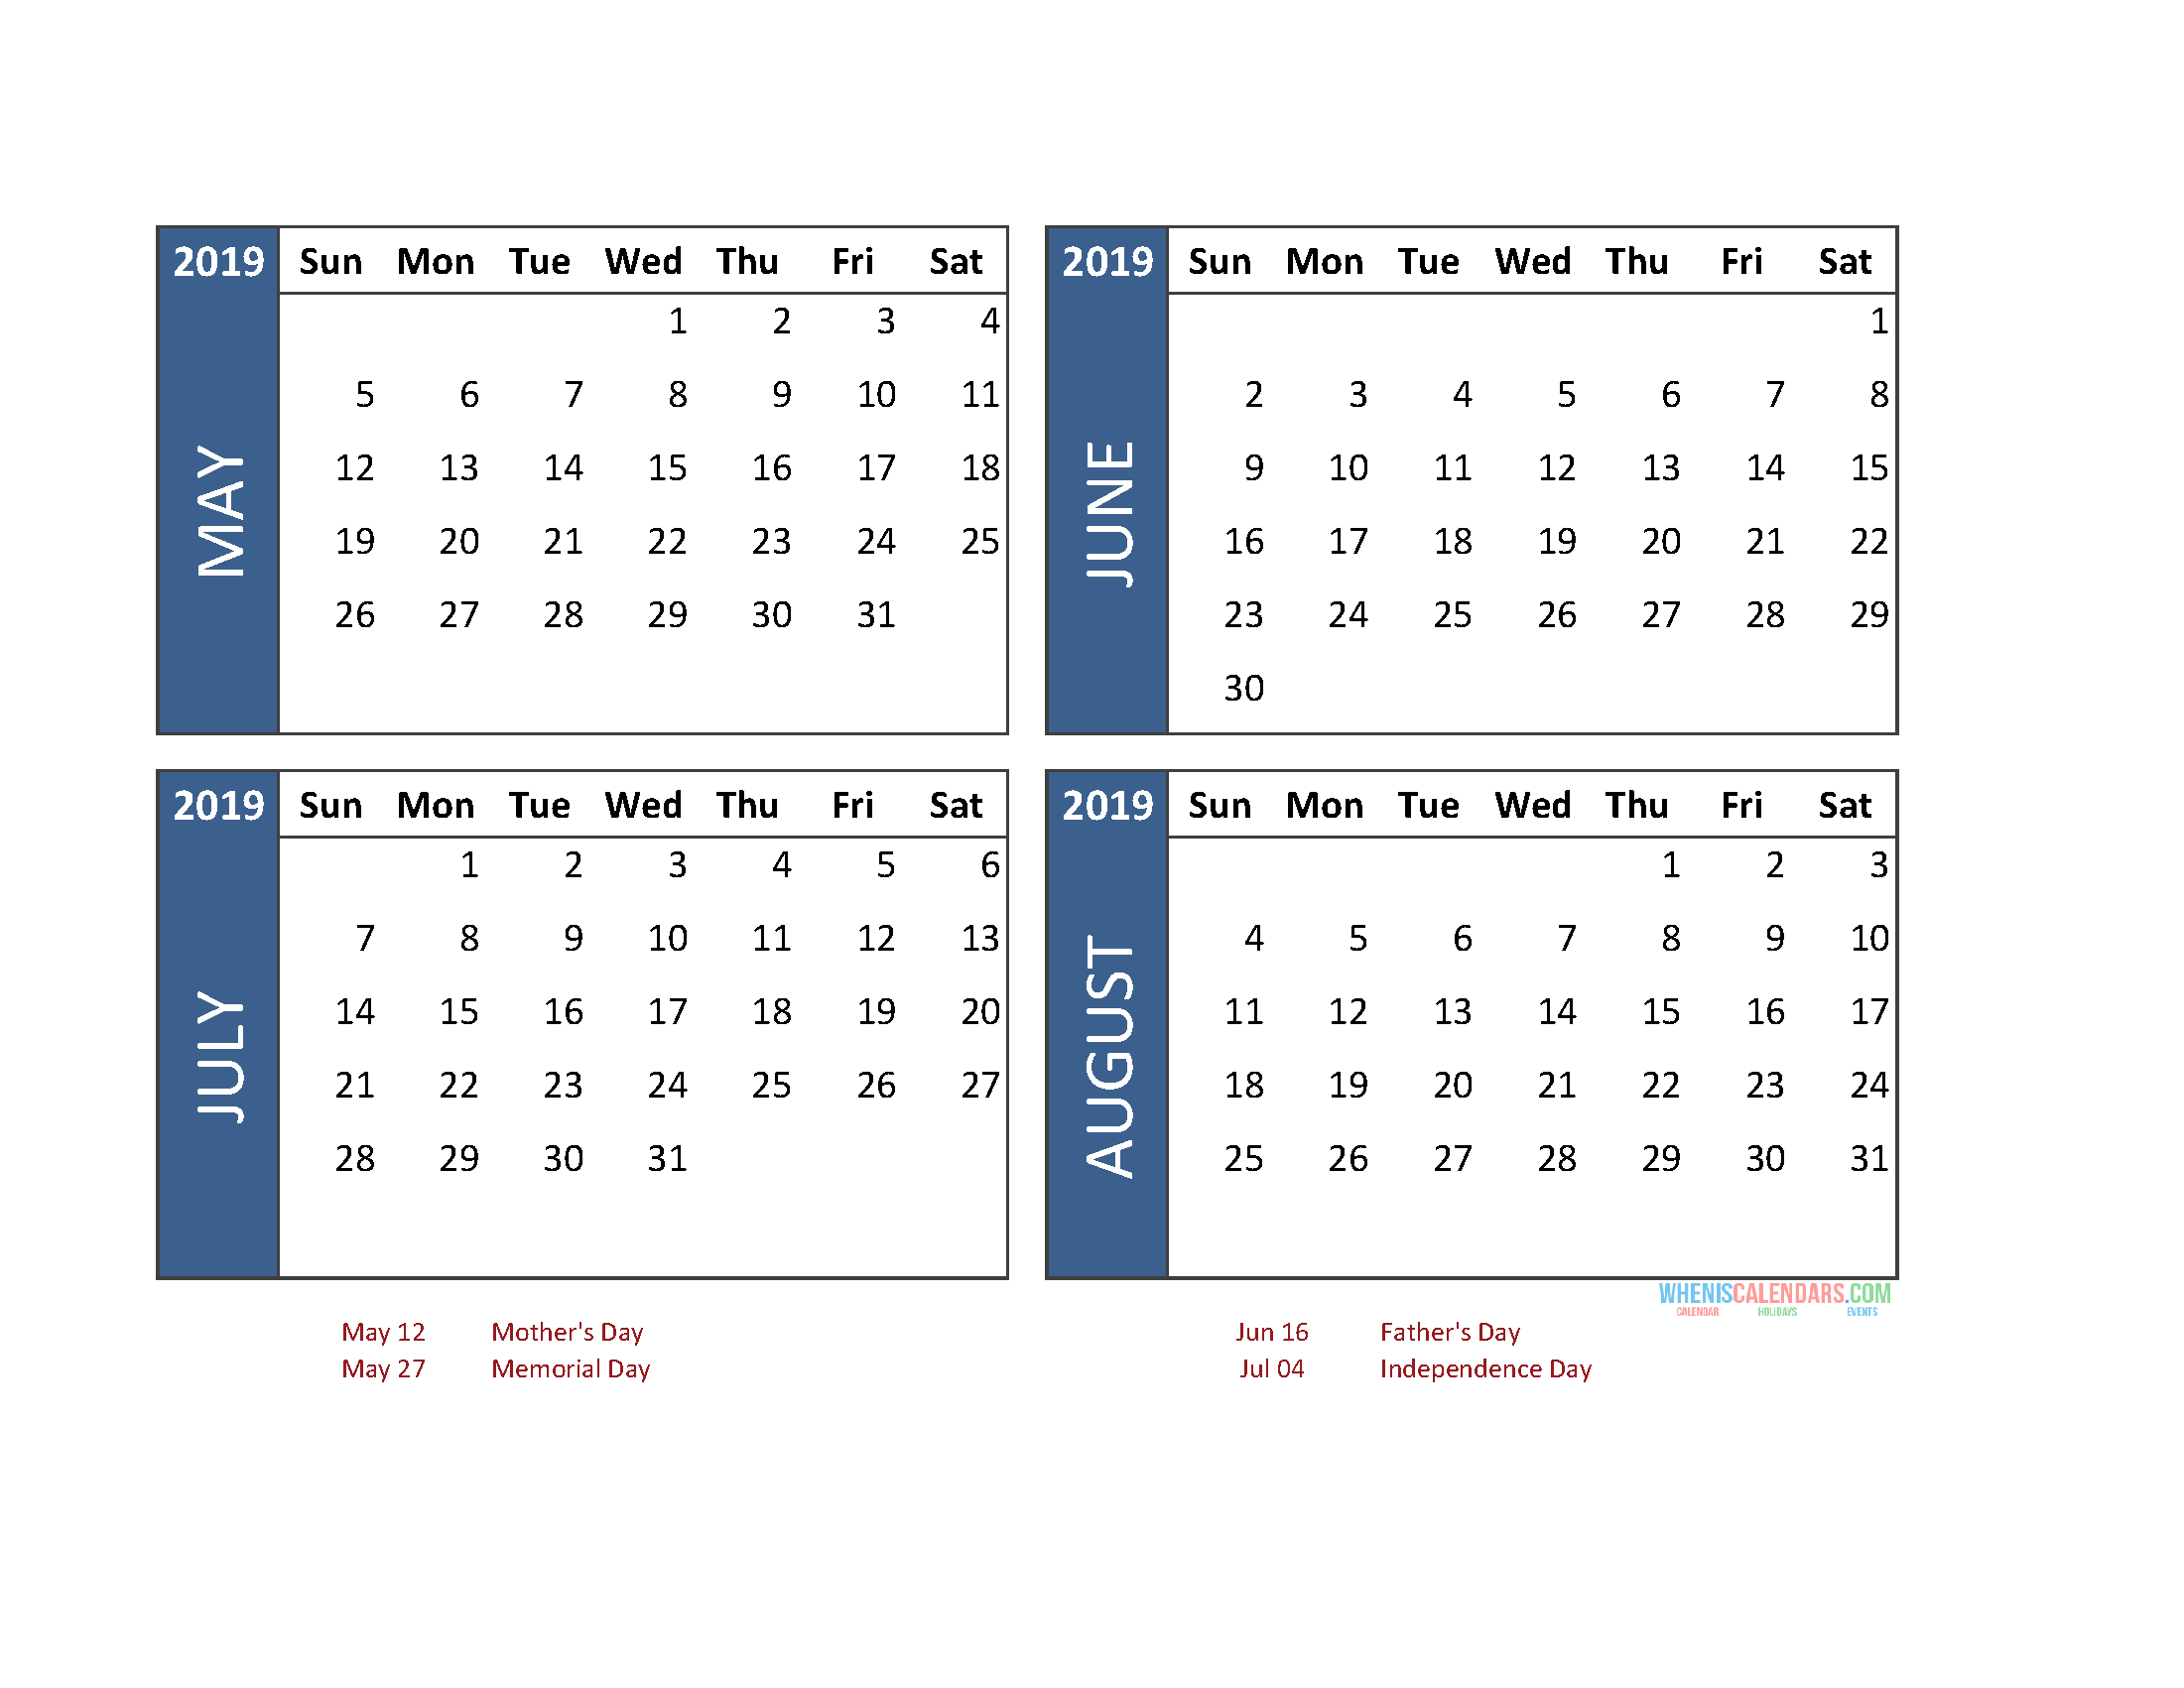 Printable 4 Month Calendar 2019 May June July August Printable Calendar For The Week Of March 2 Thru March 6